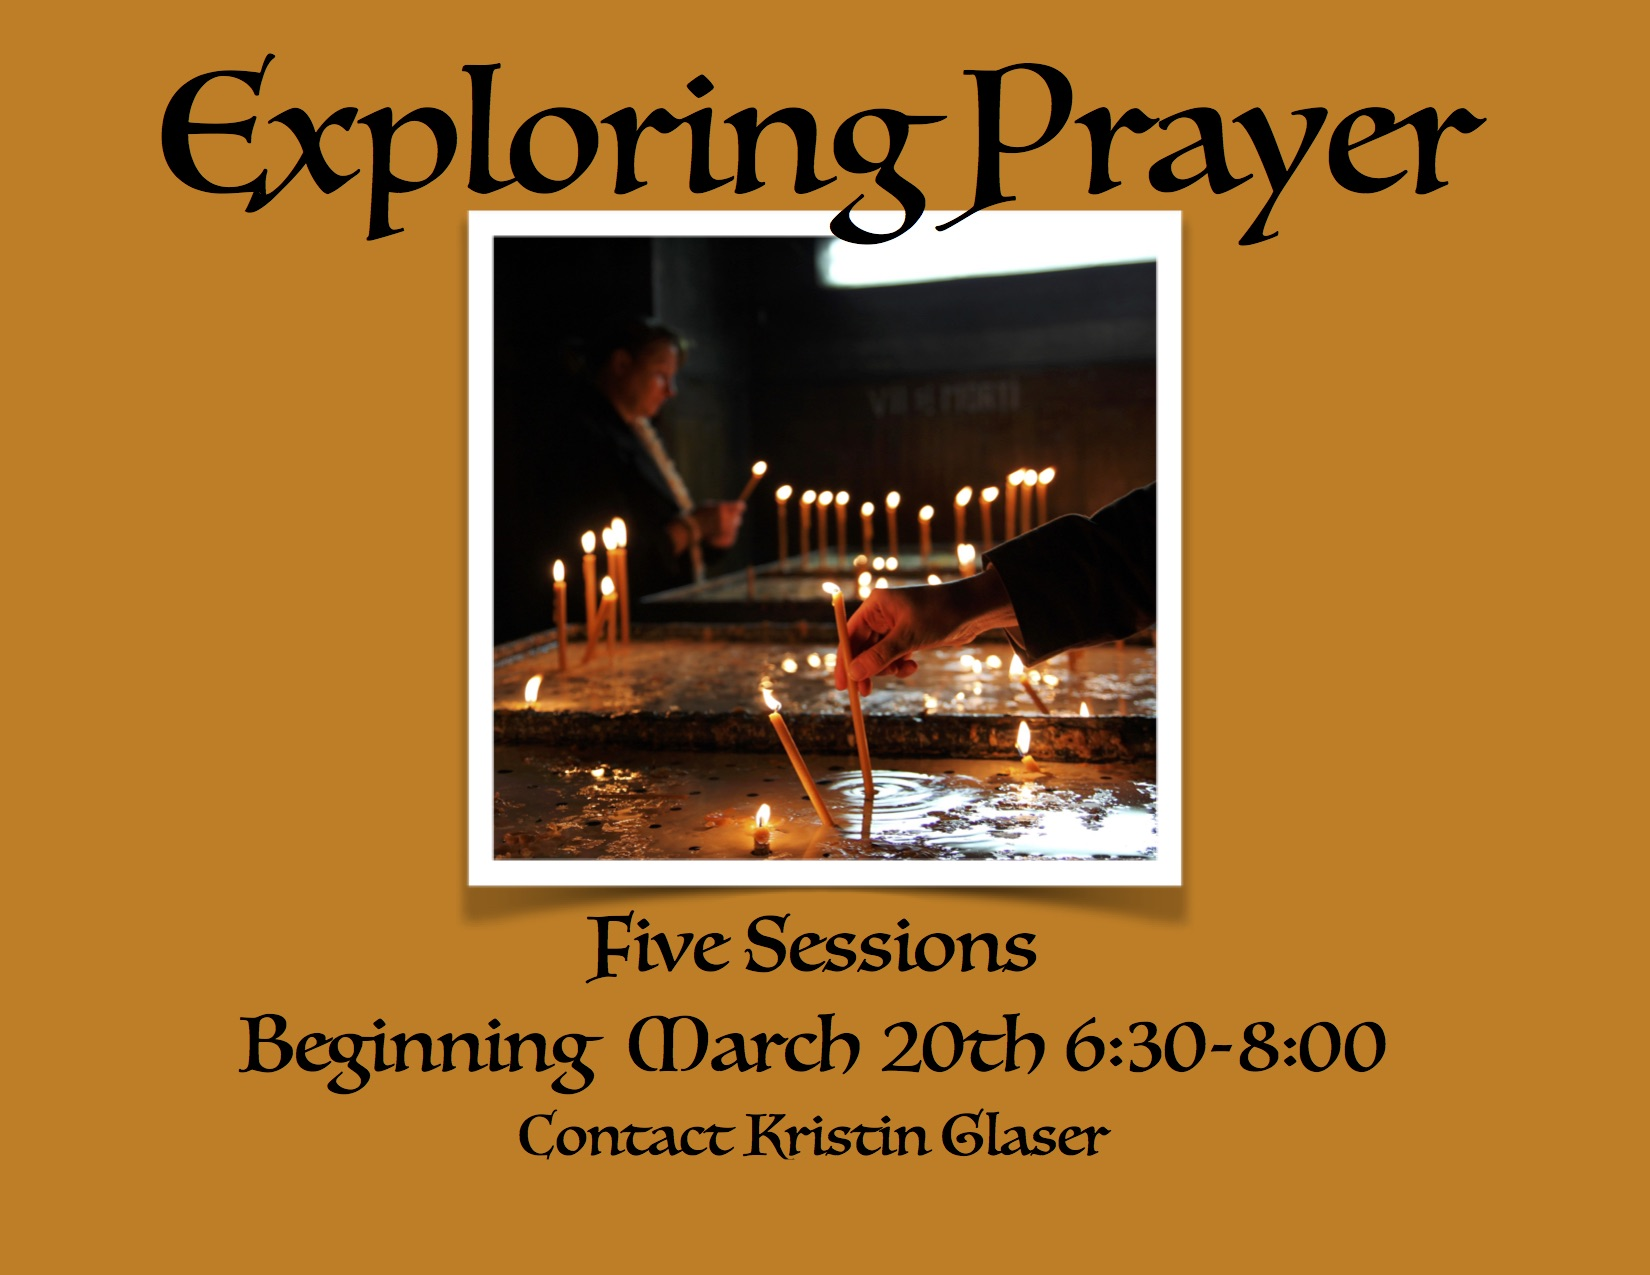 Exploring Prayer: Five Sessions Beginning March 20th, 6:30-8:00pm. Contact Kristin Glaser